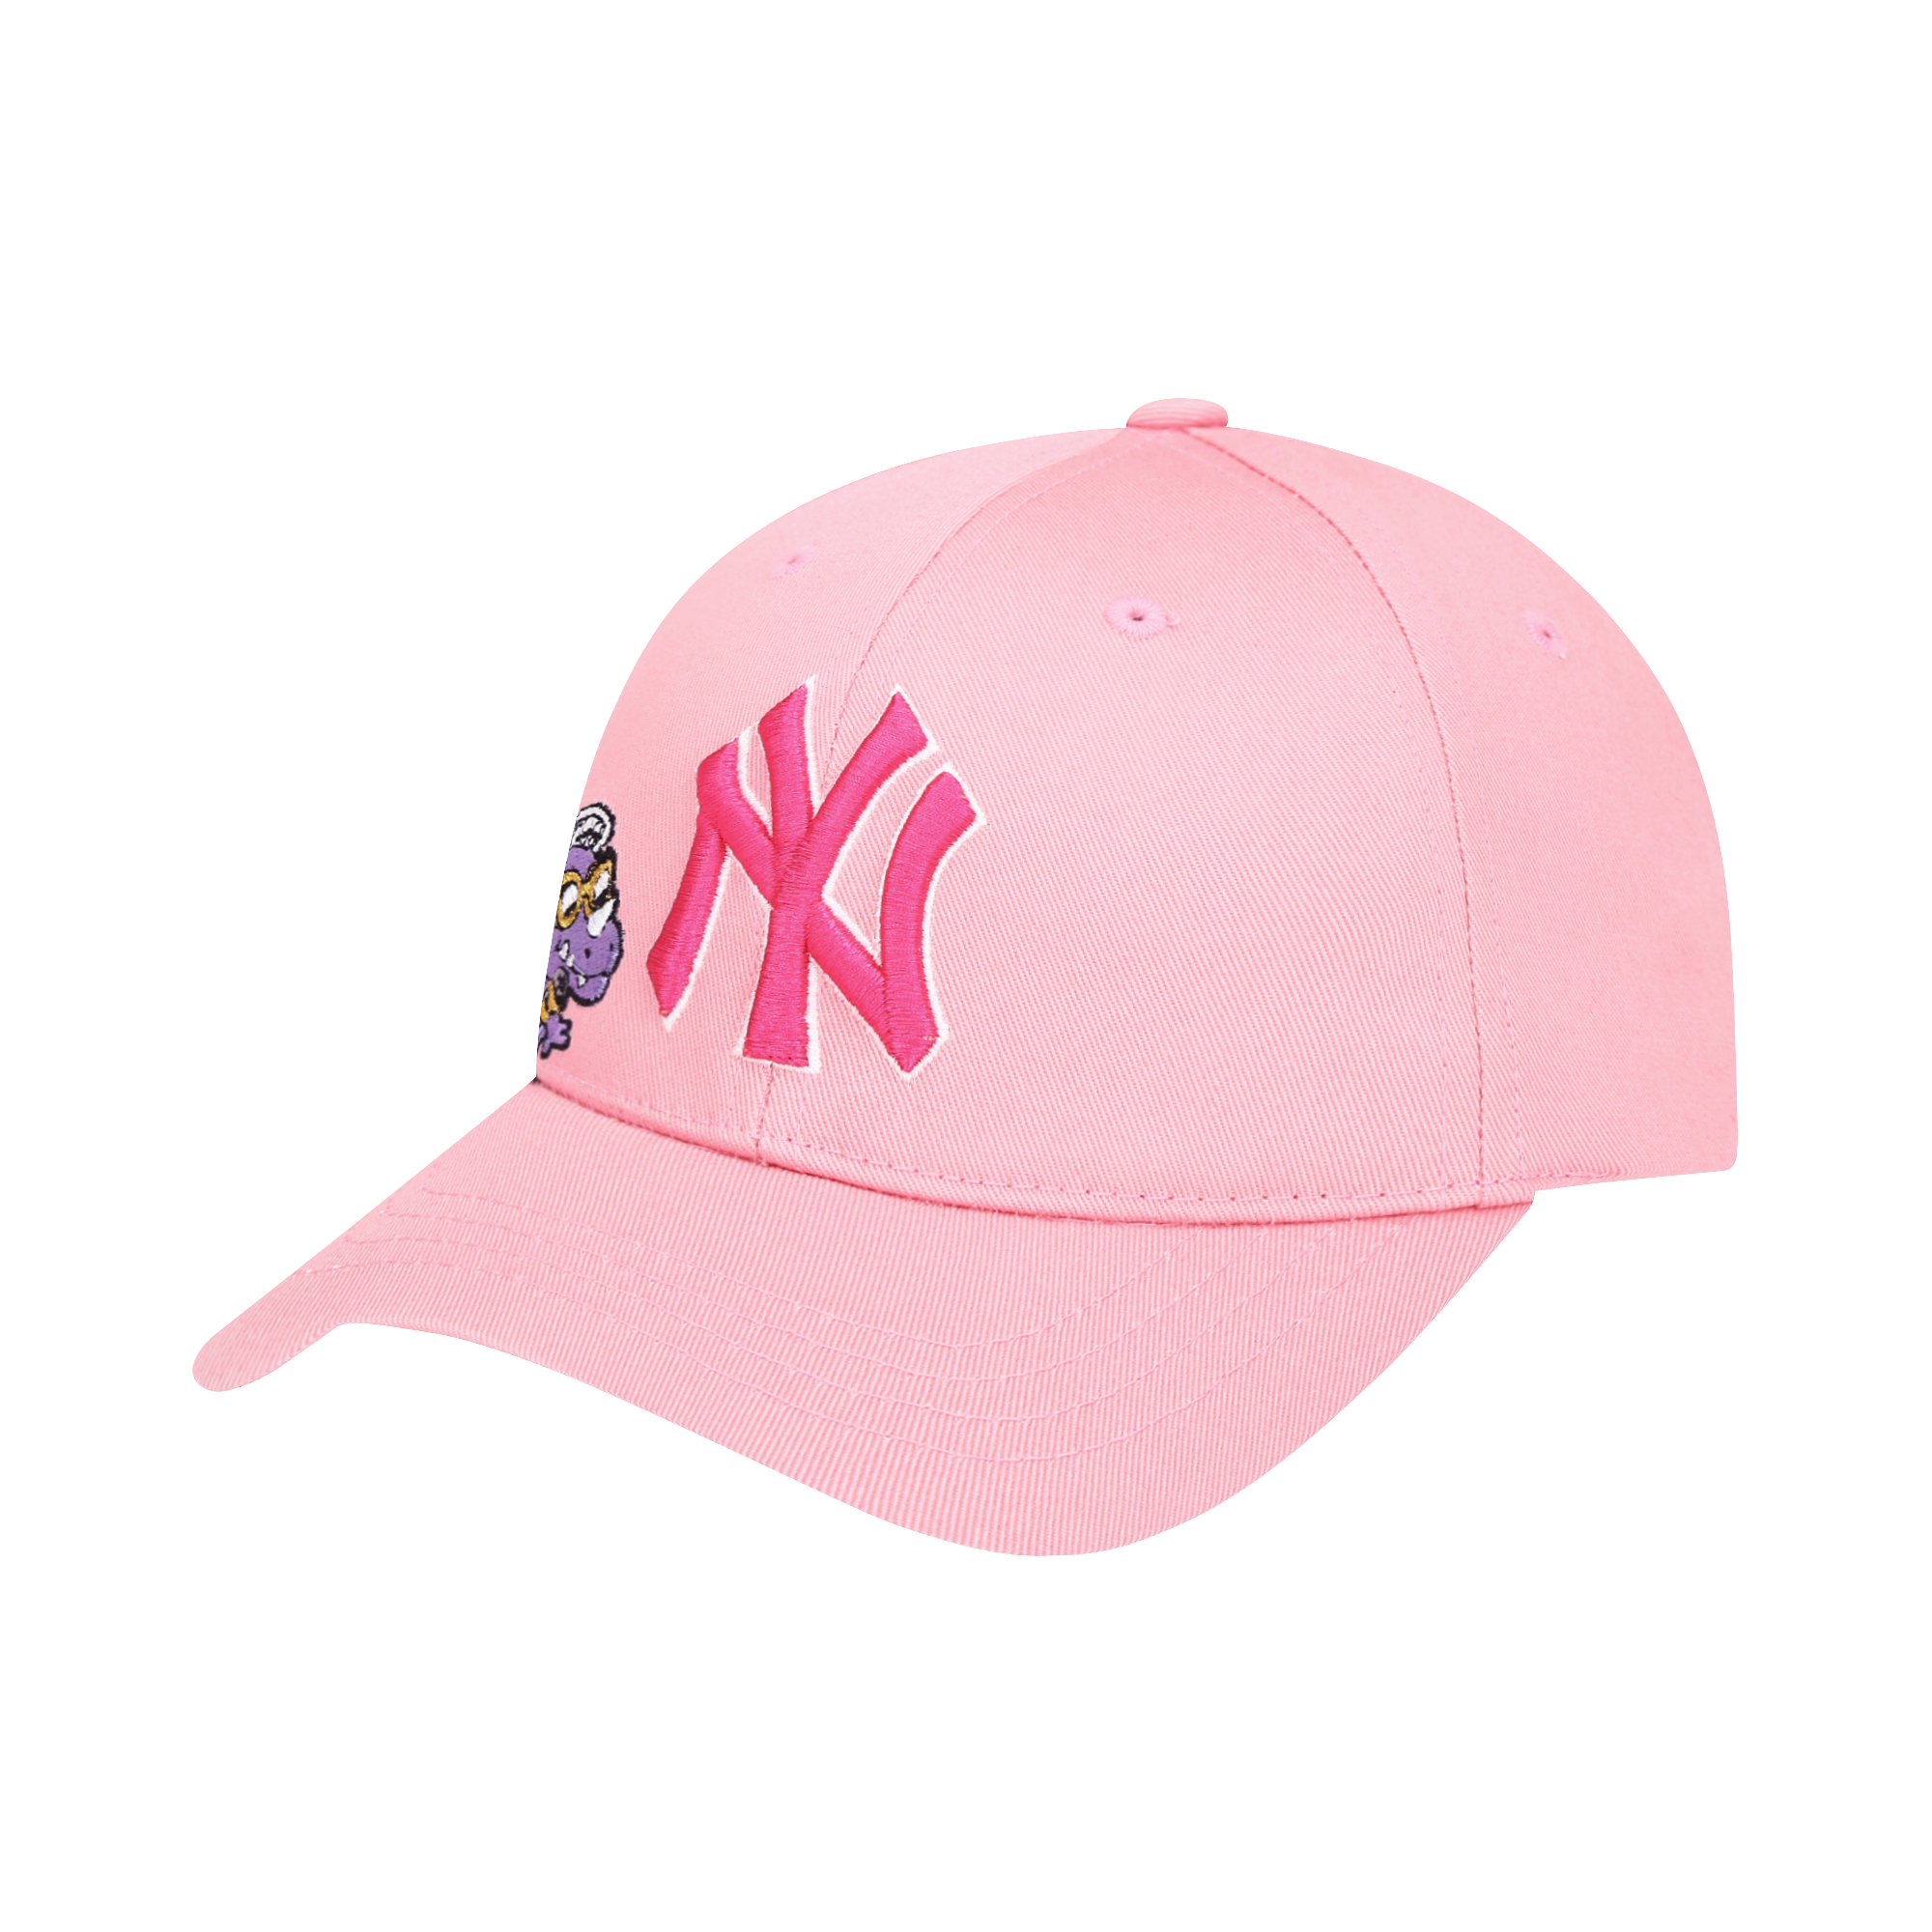 NEW YORK YANKEES DJING KINO CURVED CAP